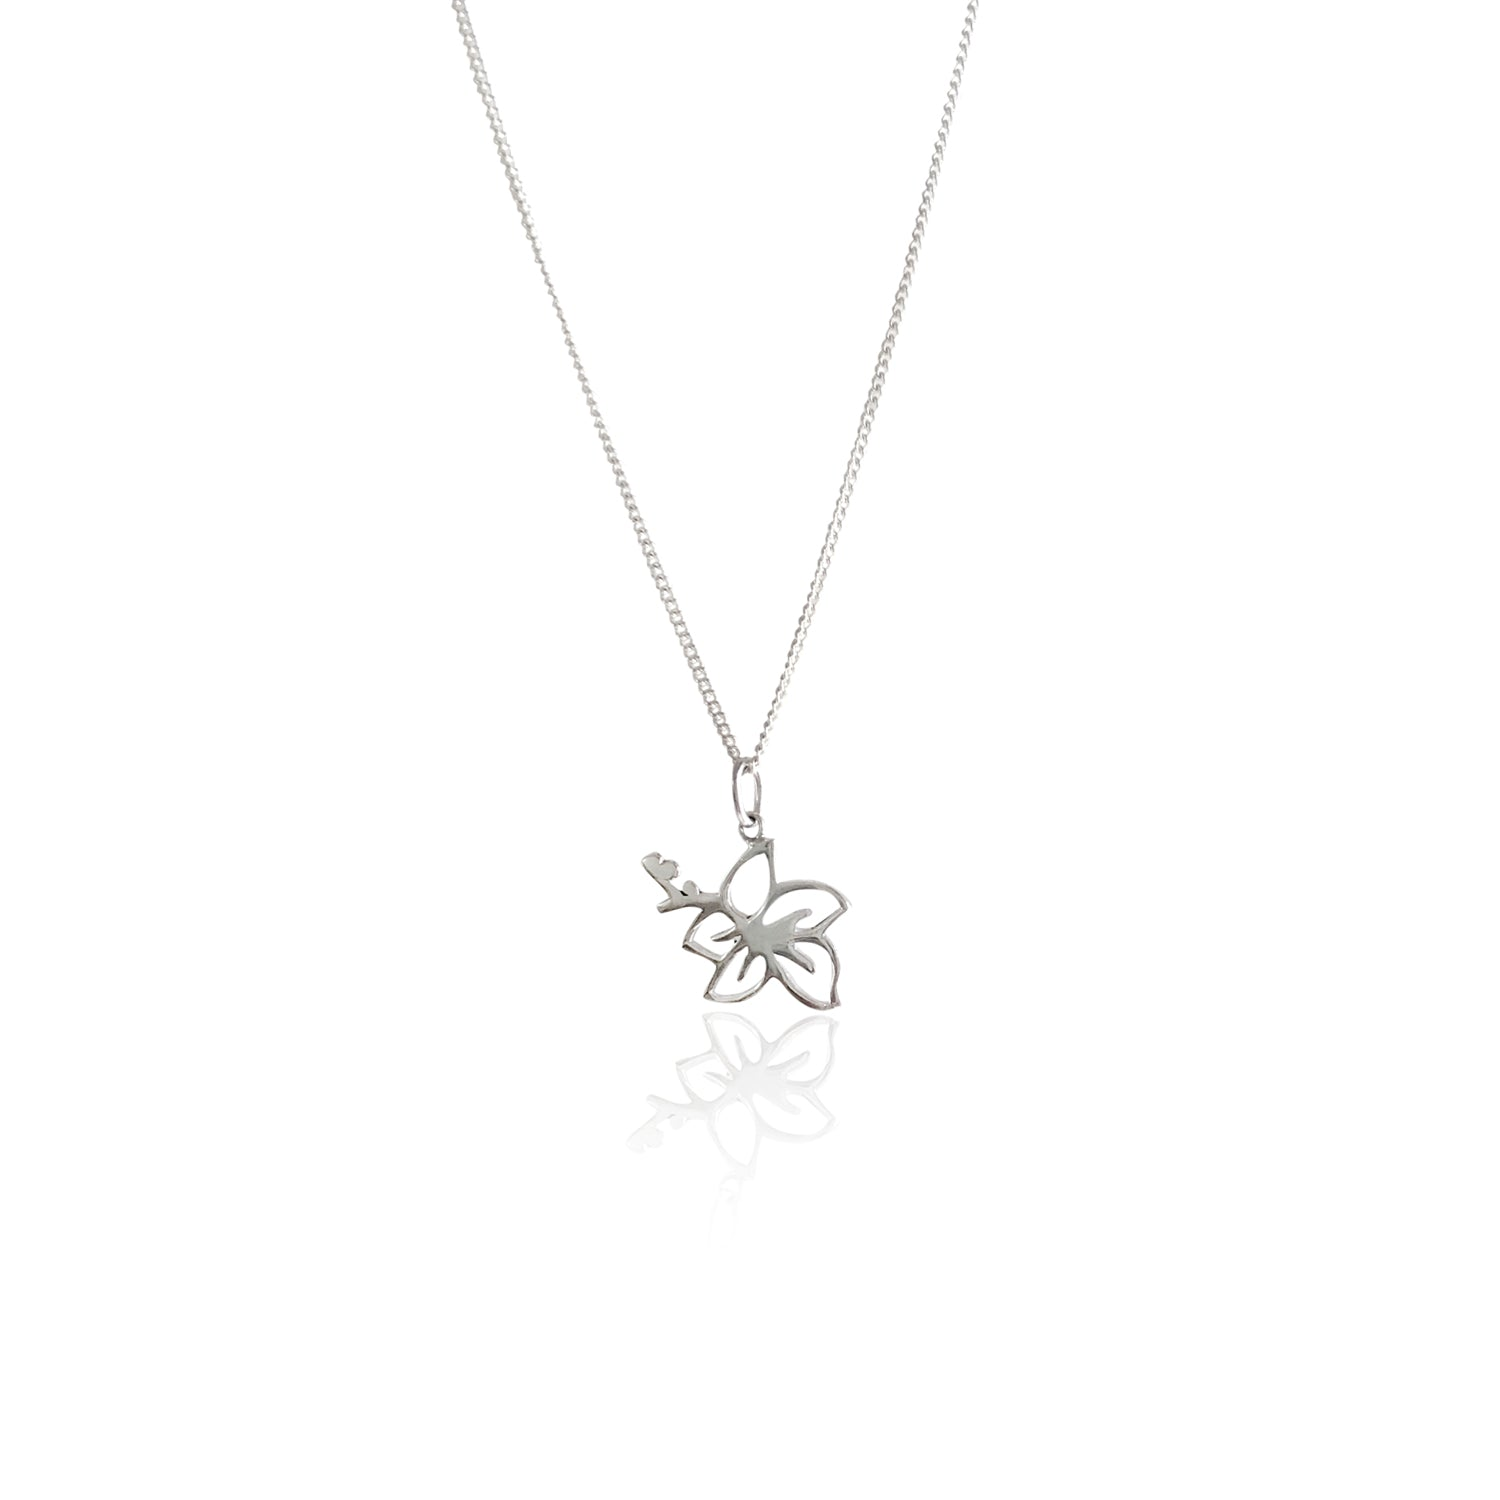 Jewels Obsession Saying Necklace Rhodium-plated 925 Silver Kiss Me Saying Pendant with 16 Necklace